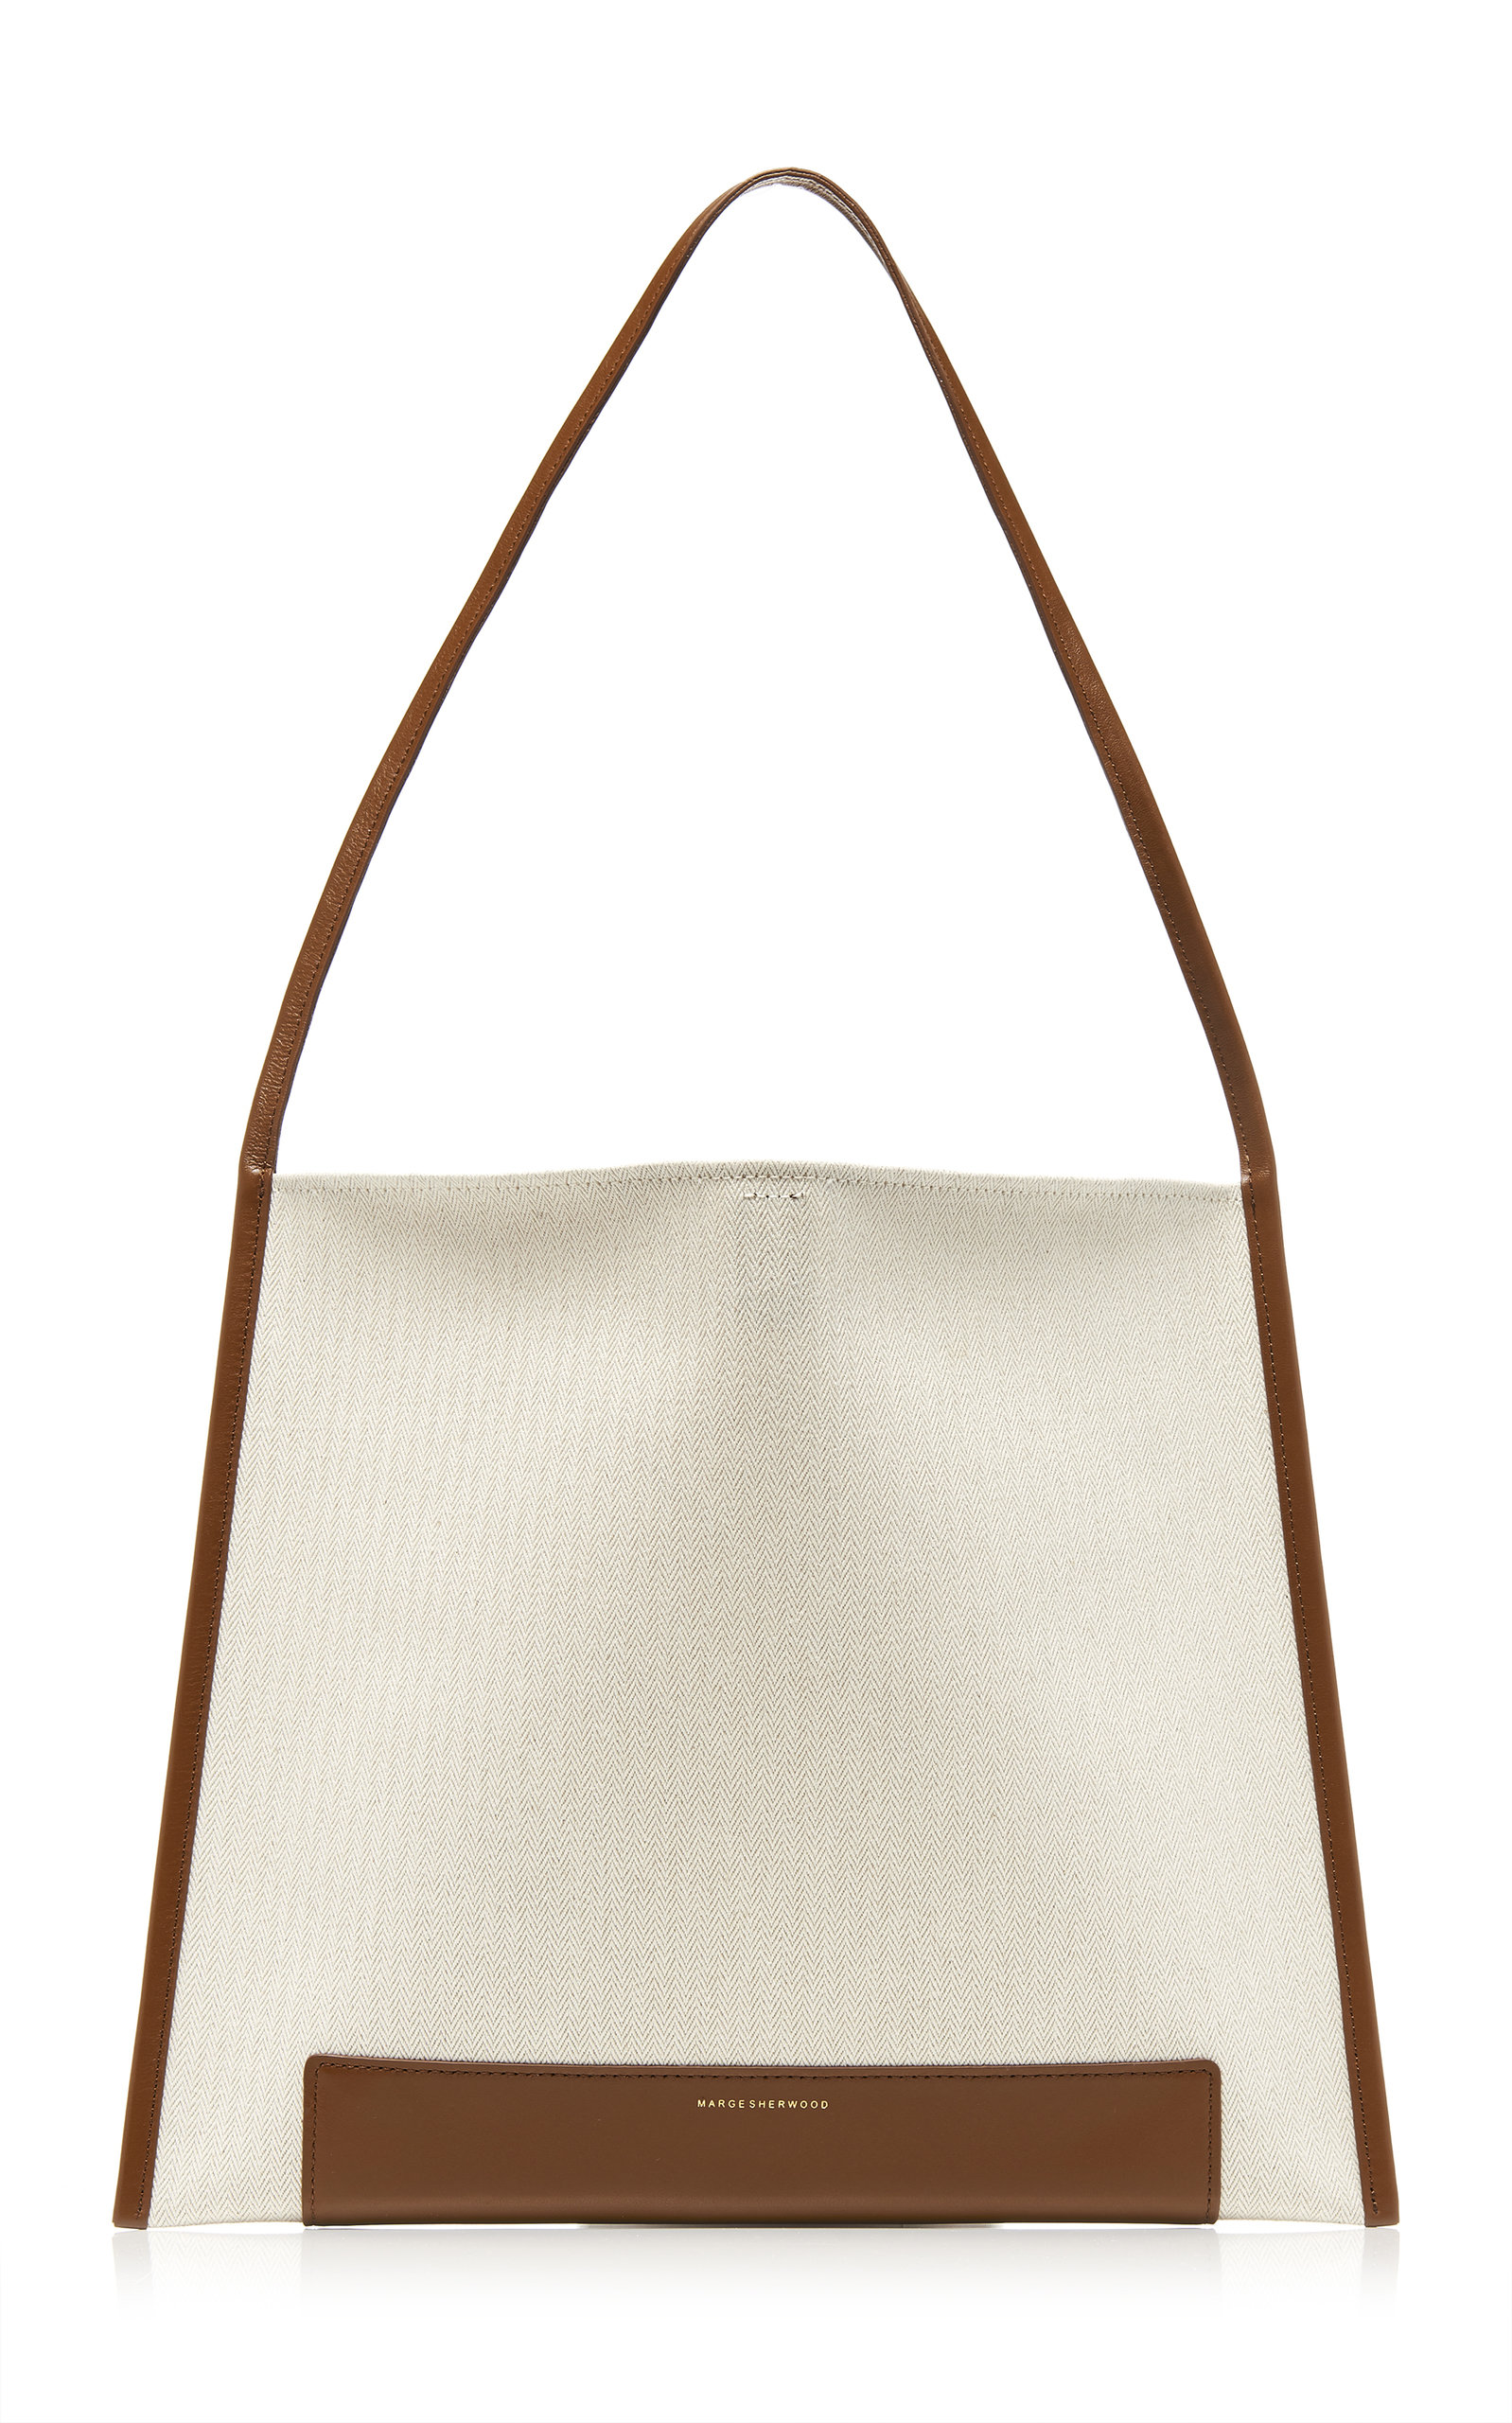 Marge Sherwood Joy Leather-trimmed Canvas Shopper Tote In Brown